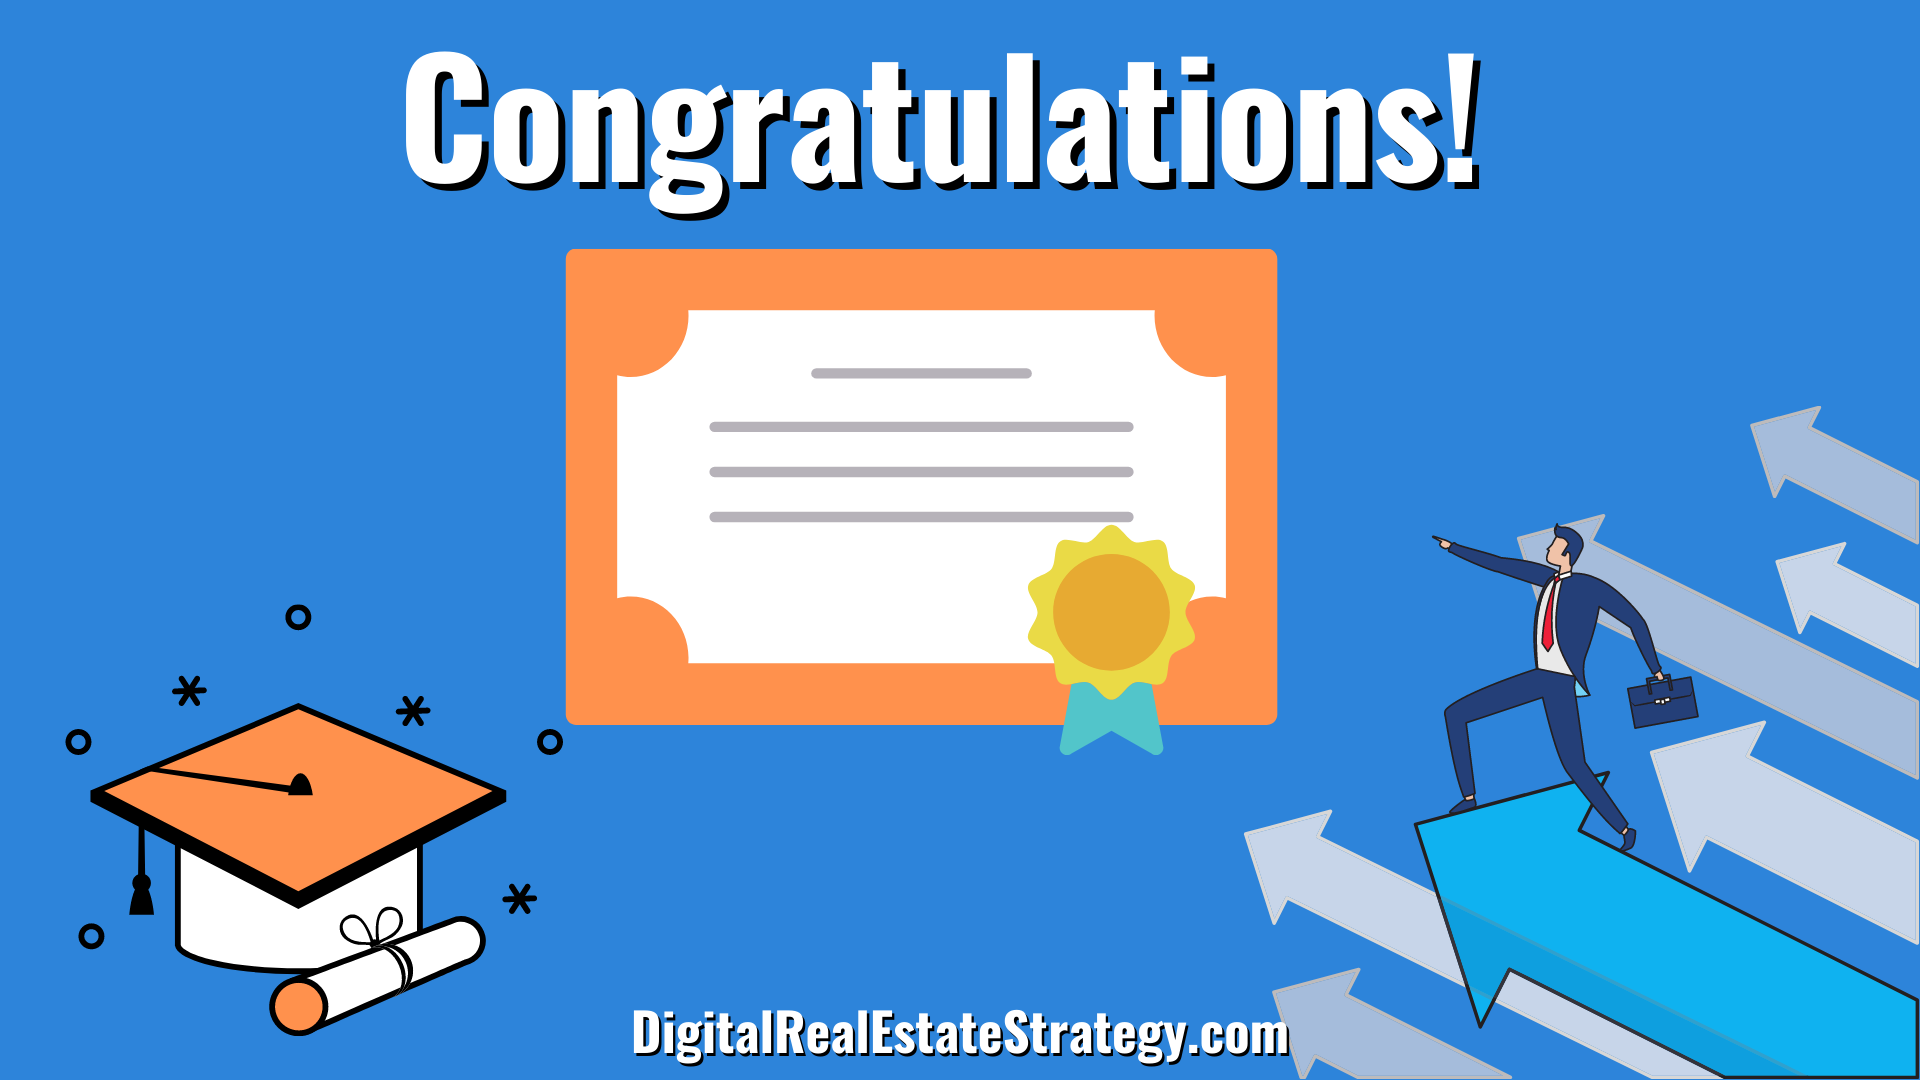 Congratulations - Real Estate License Requirements - Real Estate School - Jerome Lewis - Philadelphia - eXp Realty